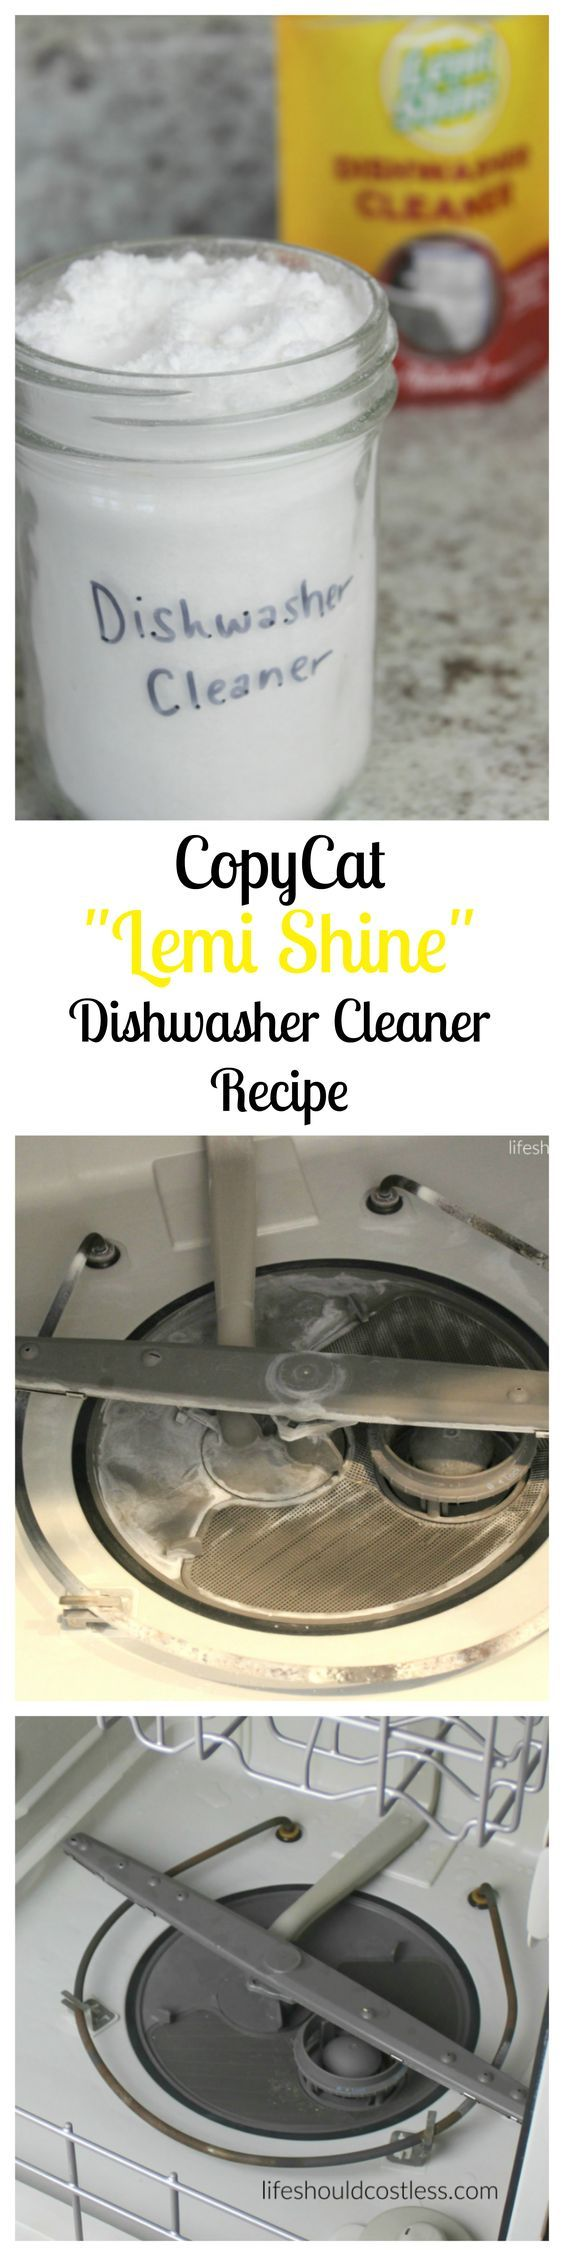 "CopyCat ""Lemi Shine"" Dishwasher Cleaner Recipe. It works just like the real stuff but at a fraction of the cost. For this and more money saving copycat recipes check out the full post at lifeshouldcostless.com."